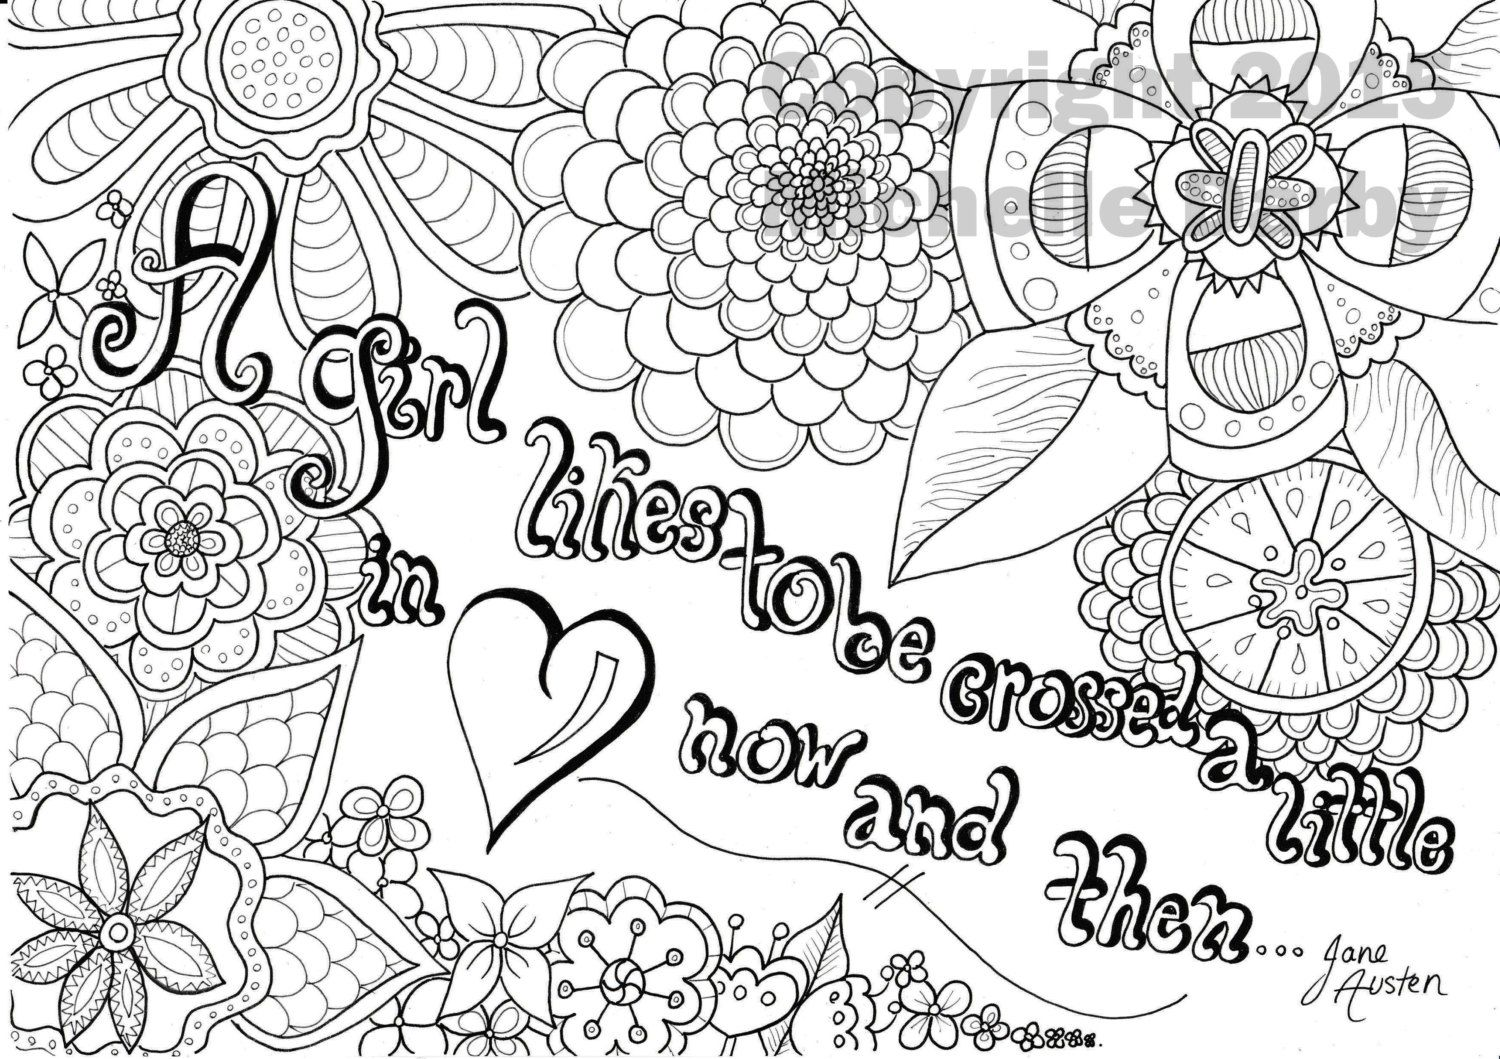 A girl crossed in love- Jane Austen quote coloring page | Jane ...